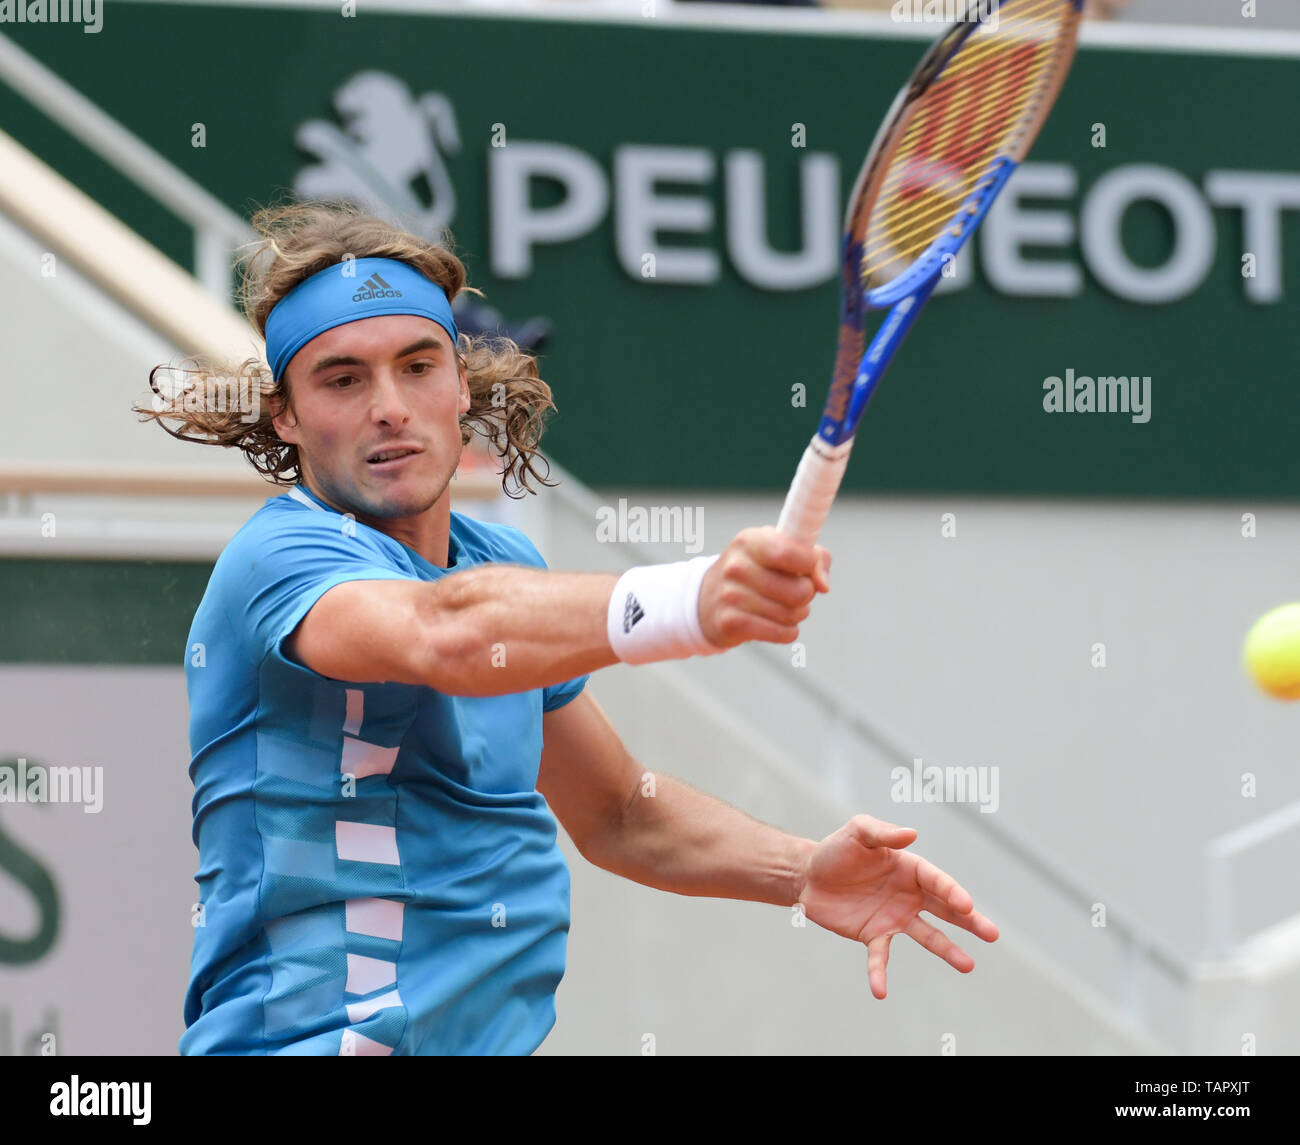 Paris  26th May, 2019  Stefanos Tsitsipas (GRE) defeated